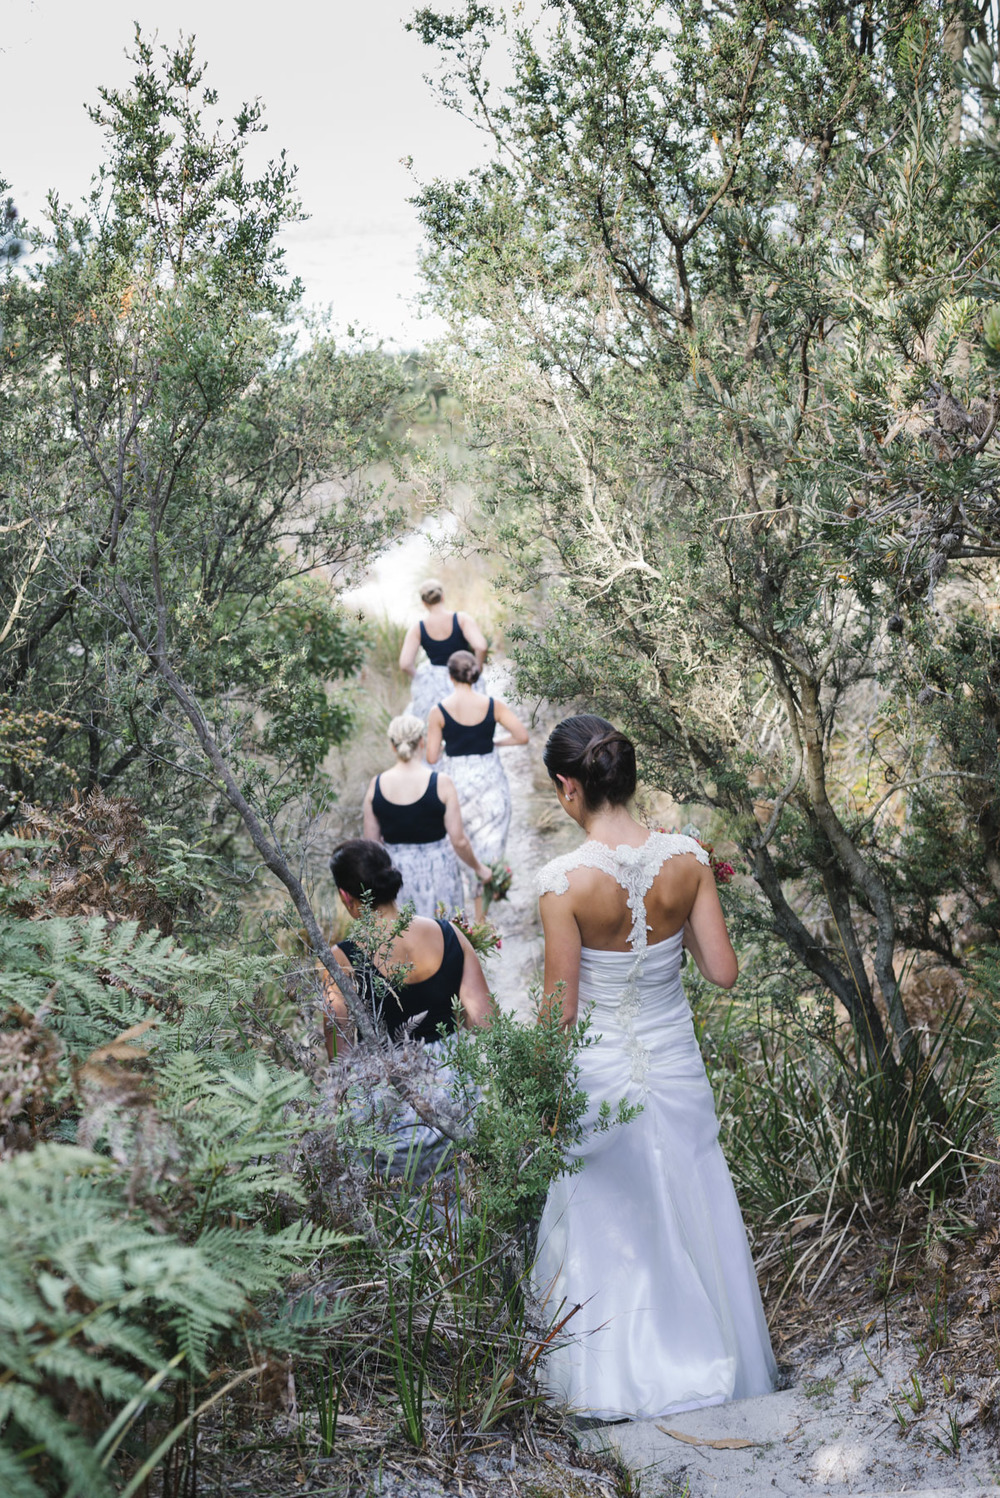 1501curchill-275alan_moyle_wedding_portrait_brighton_bayside_bay_of_fires_rustic_styled_rustic_beach_candid_documentry_binalongbay_tasmania_destination.jpg